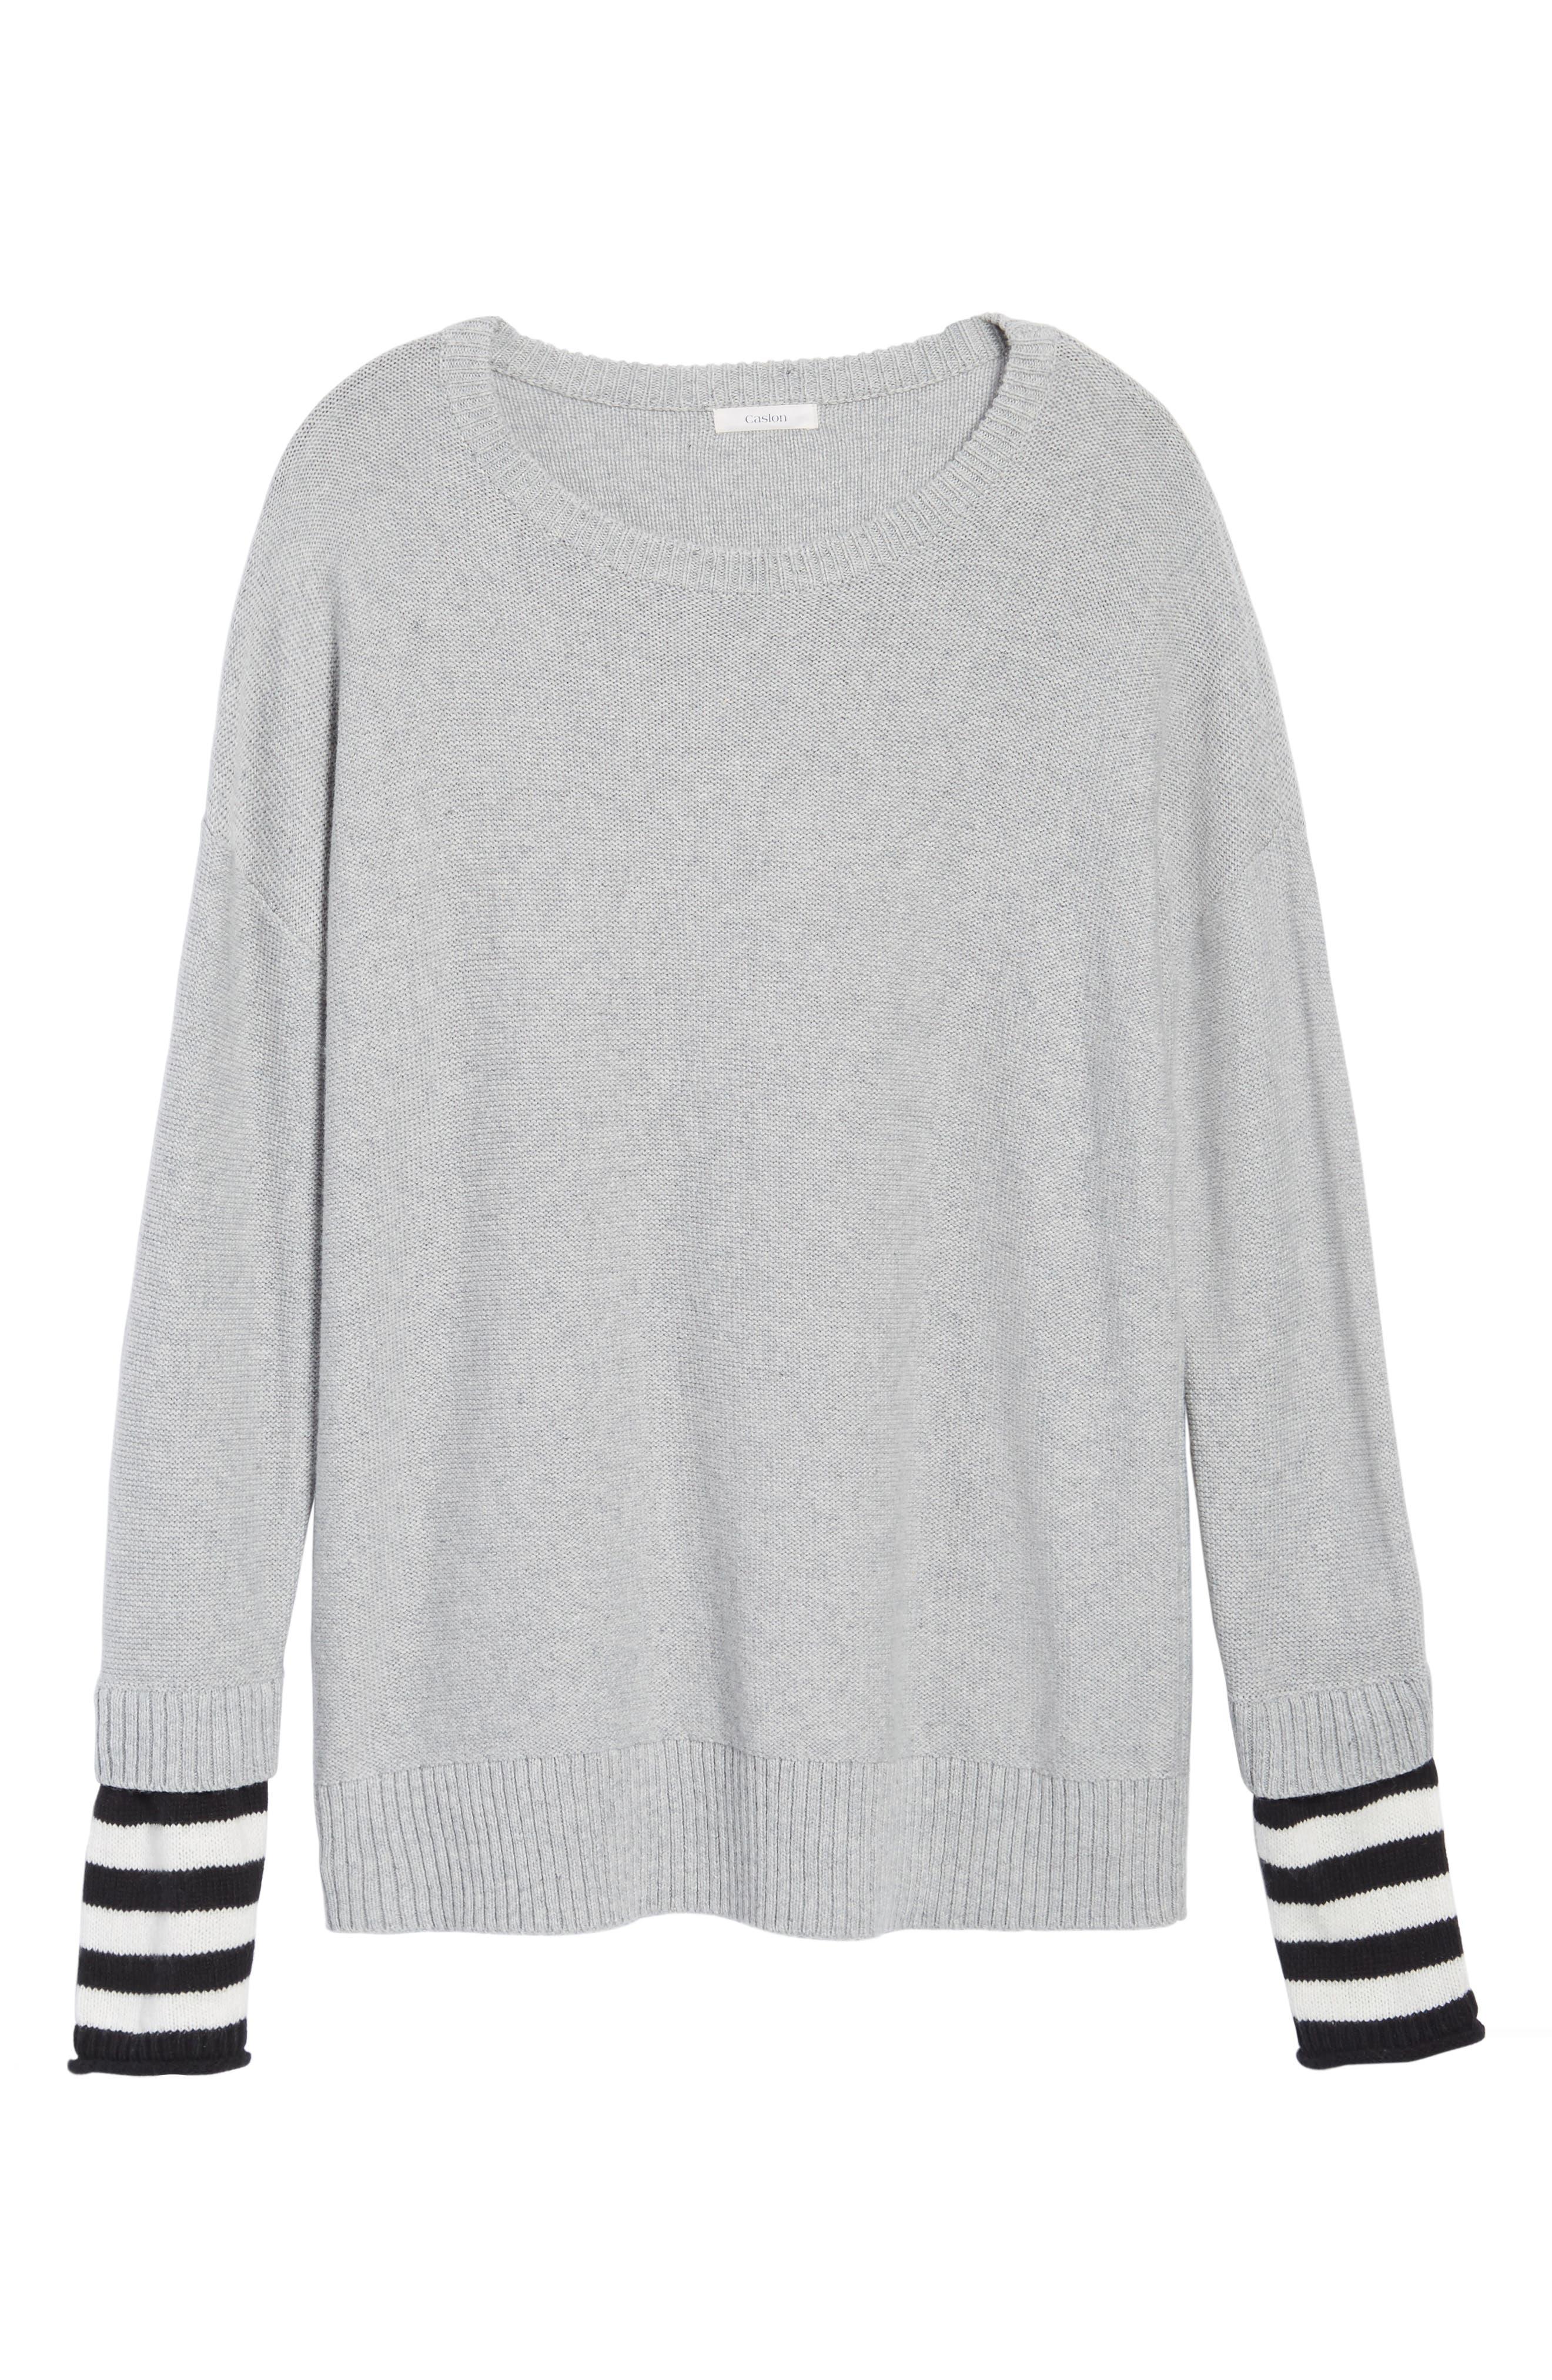 Contrast Cuff Crewneck Sweater,                             Alternate thumbnail 6, color,                             030